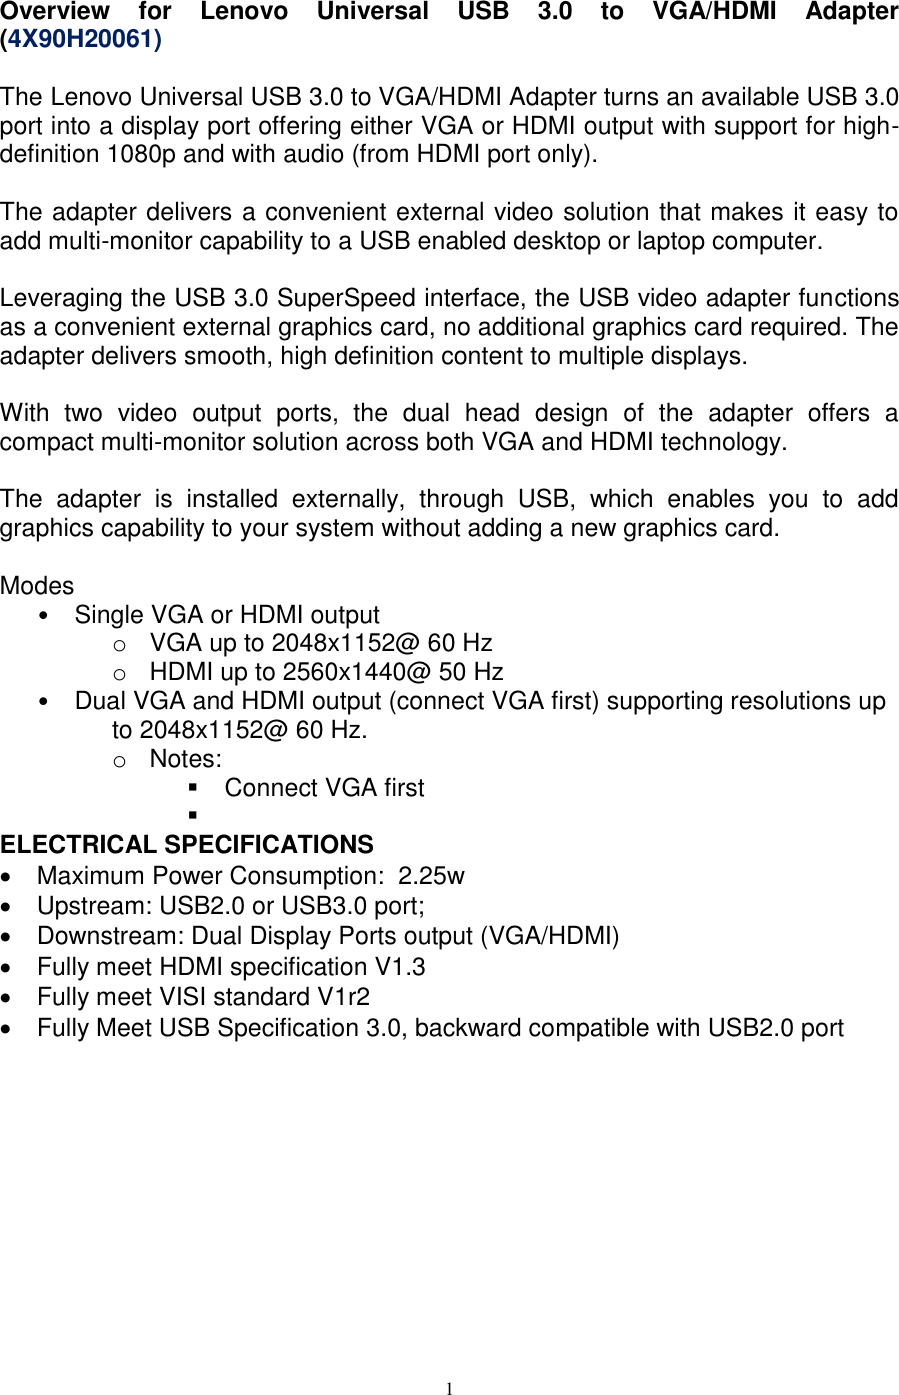 Lenovo Usb3 To Vga Hdmi Adapter 4X90H20061 User Manual X1